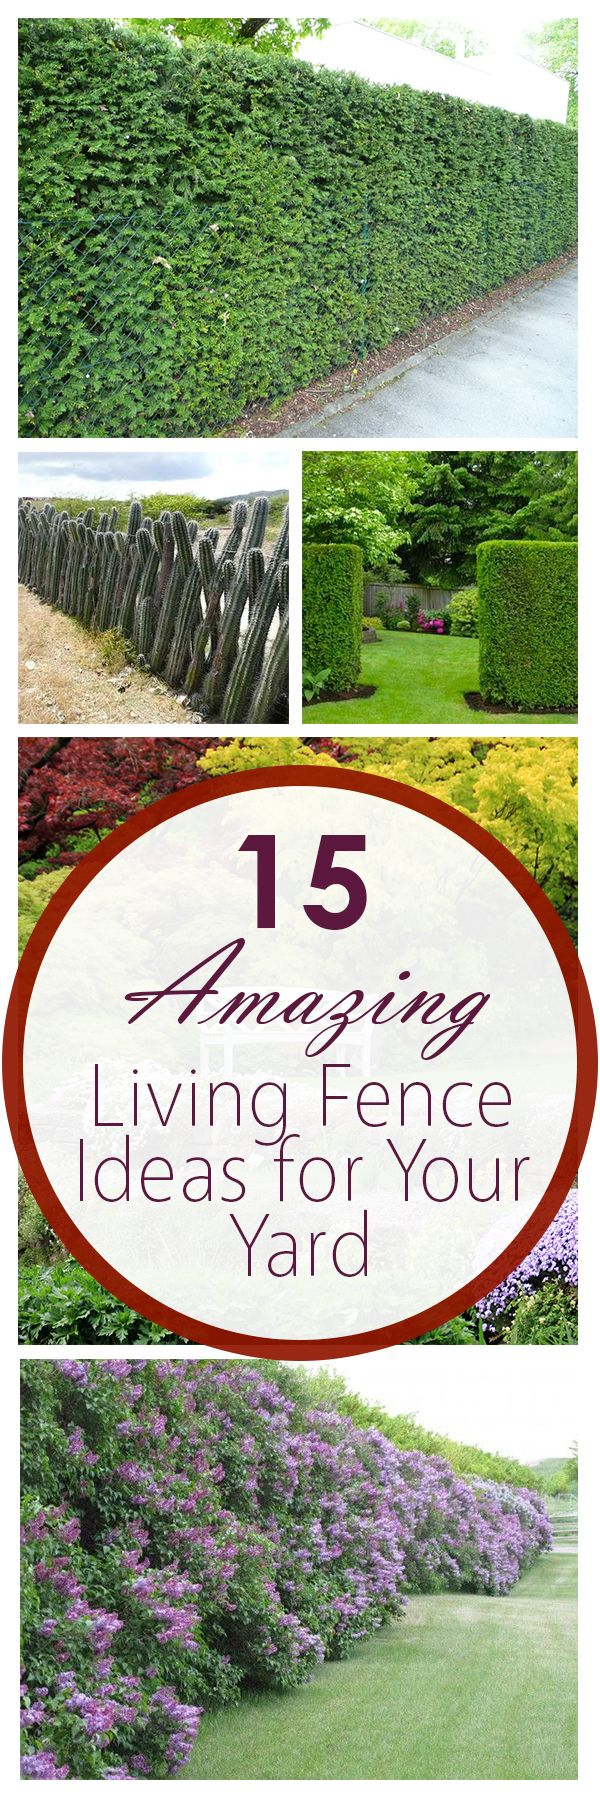 Living fence ideas, landscaping with plants, DIY living fence, easy fence ideas, backyard privacy, popular pin, gardening, outdoor living,